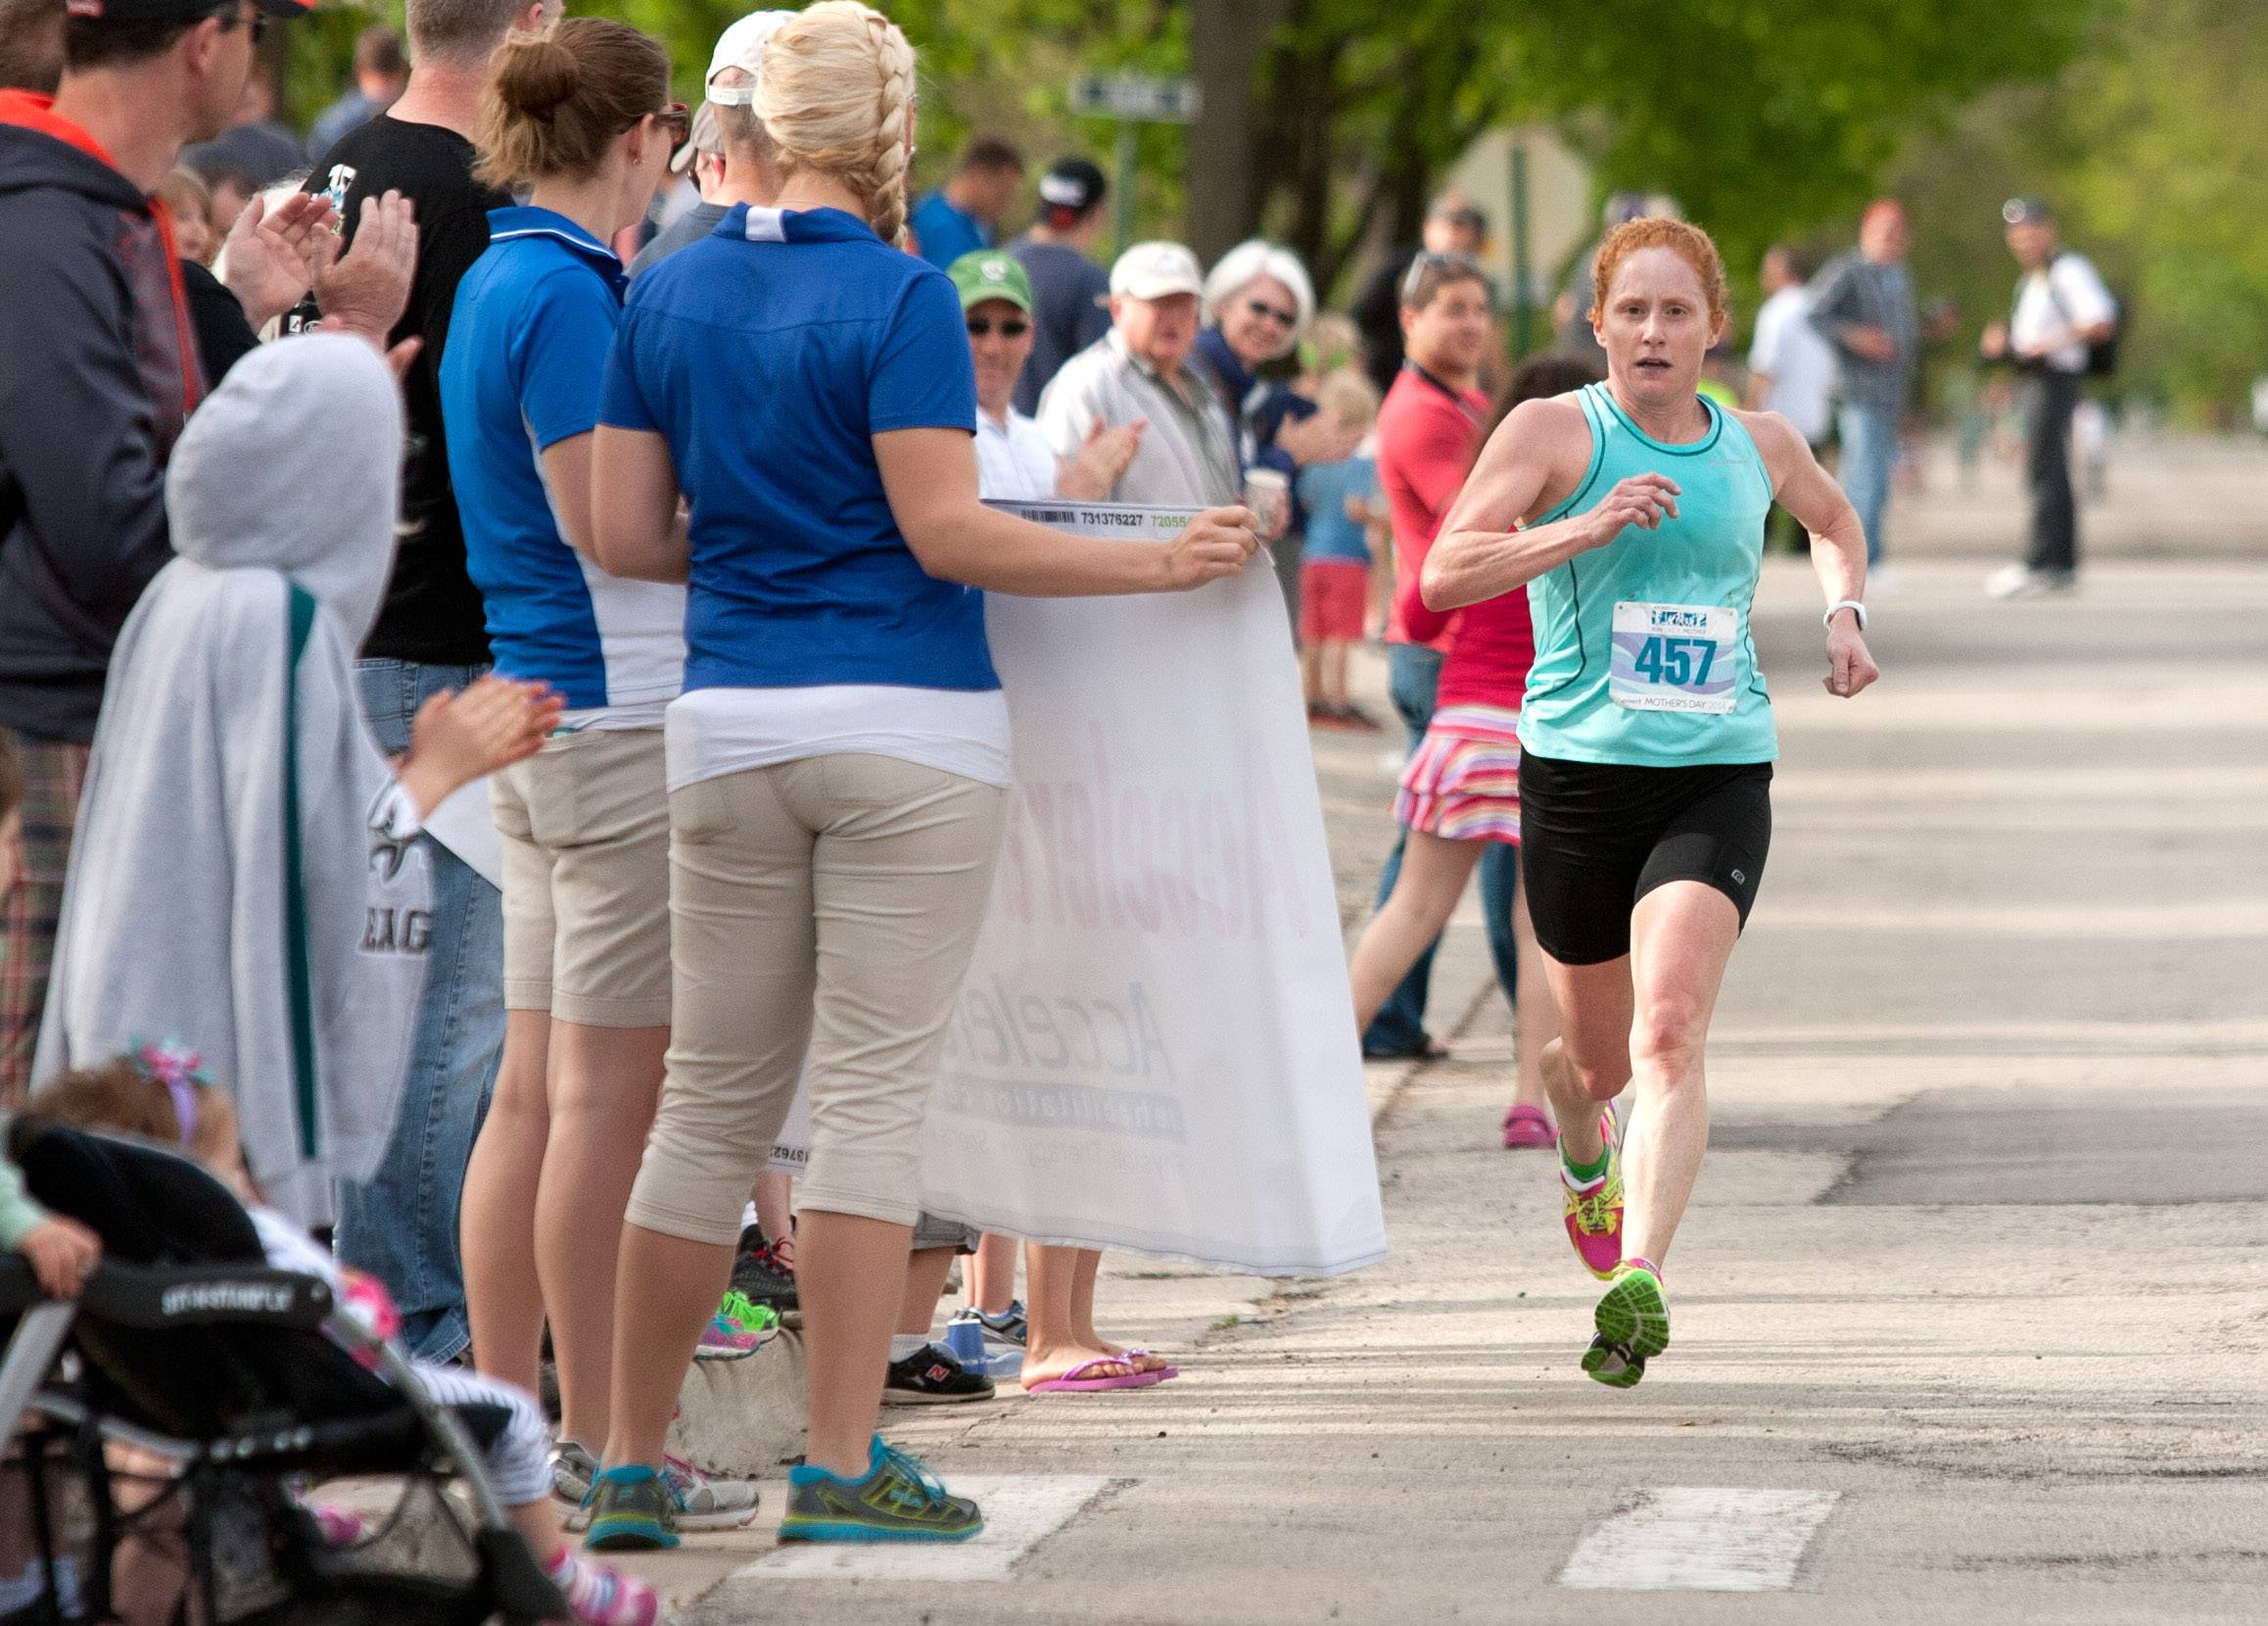 Jennifer Garrison of Naperville wins Sunday's Run Like a Mother 5K race in Hinsdale with a time of 18:36. The run raises money to enrich the lives of children with Angelman syndrome.